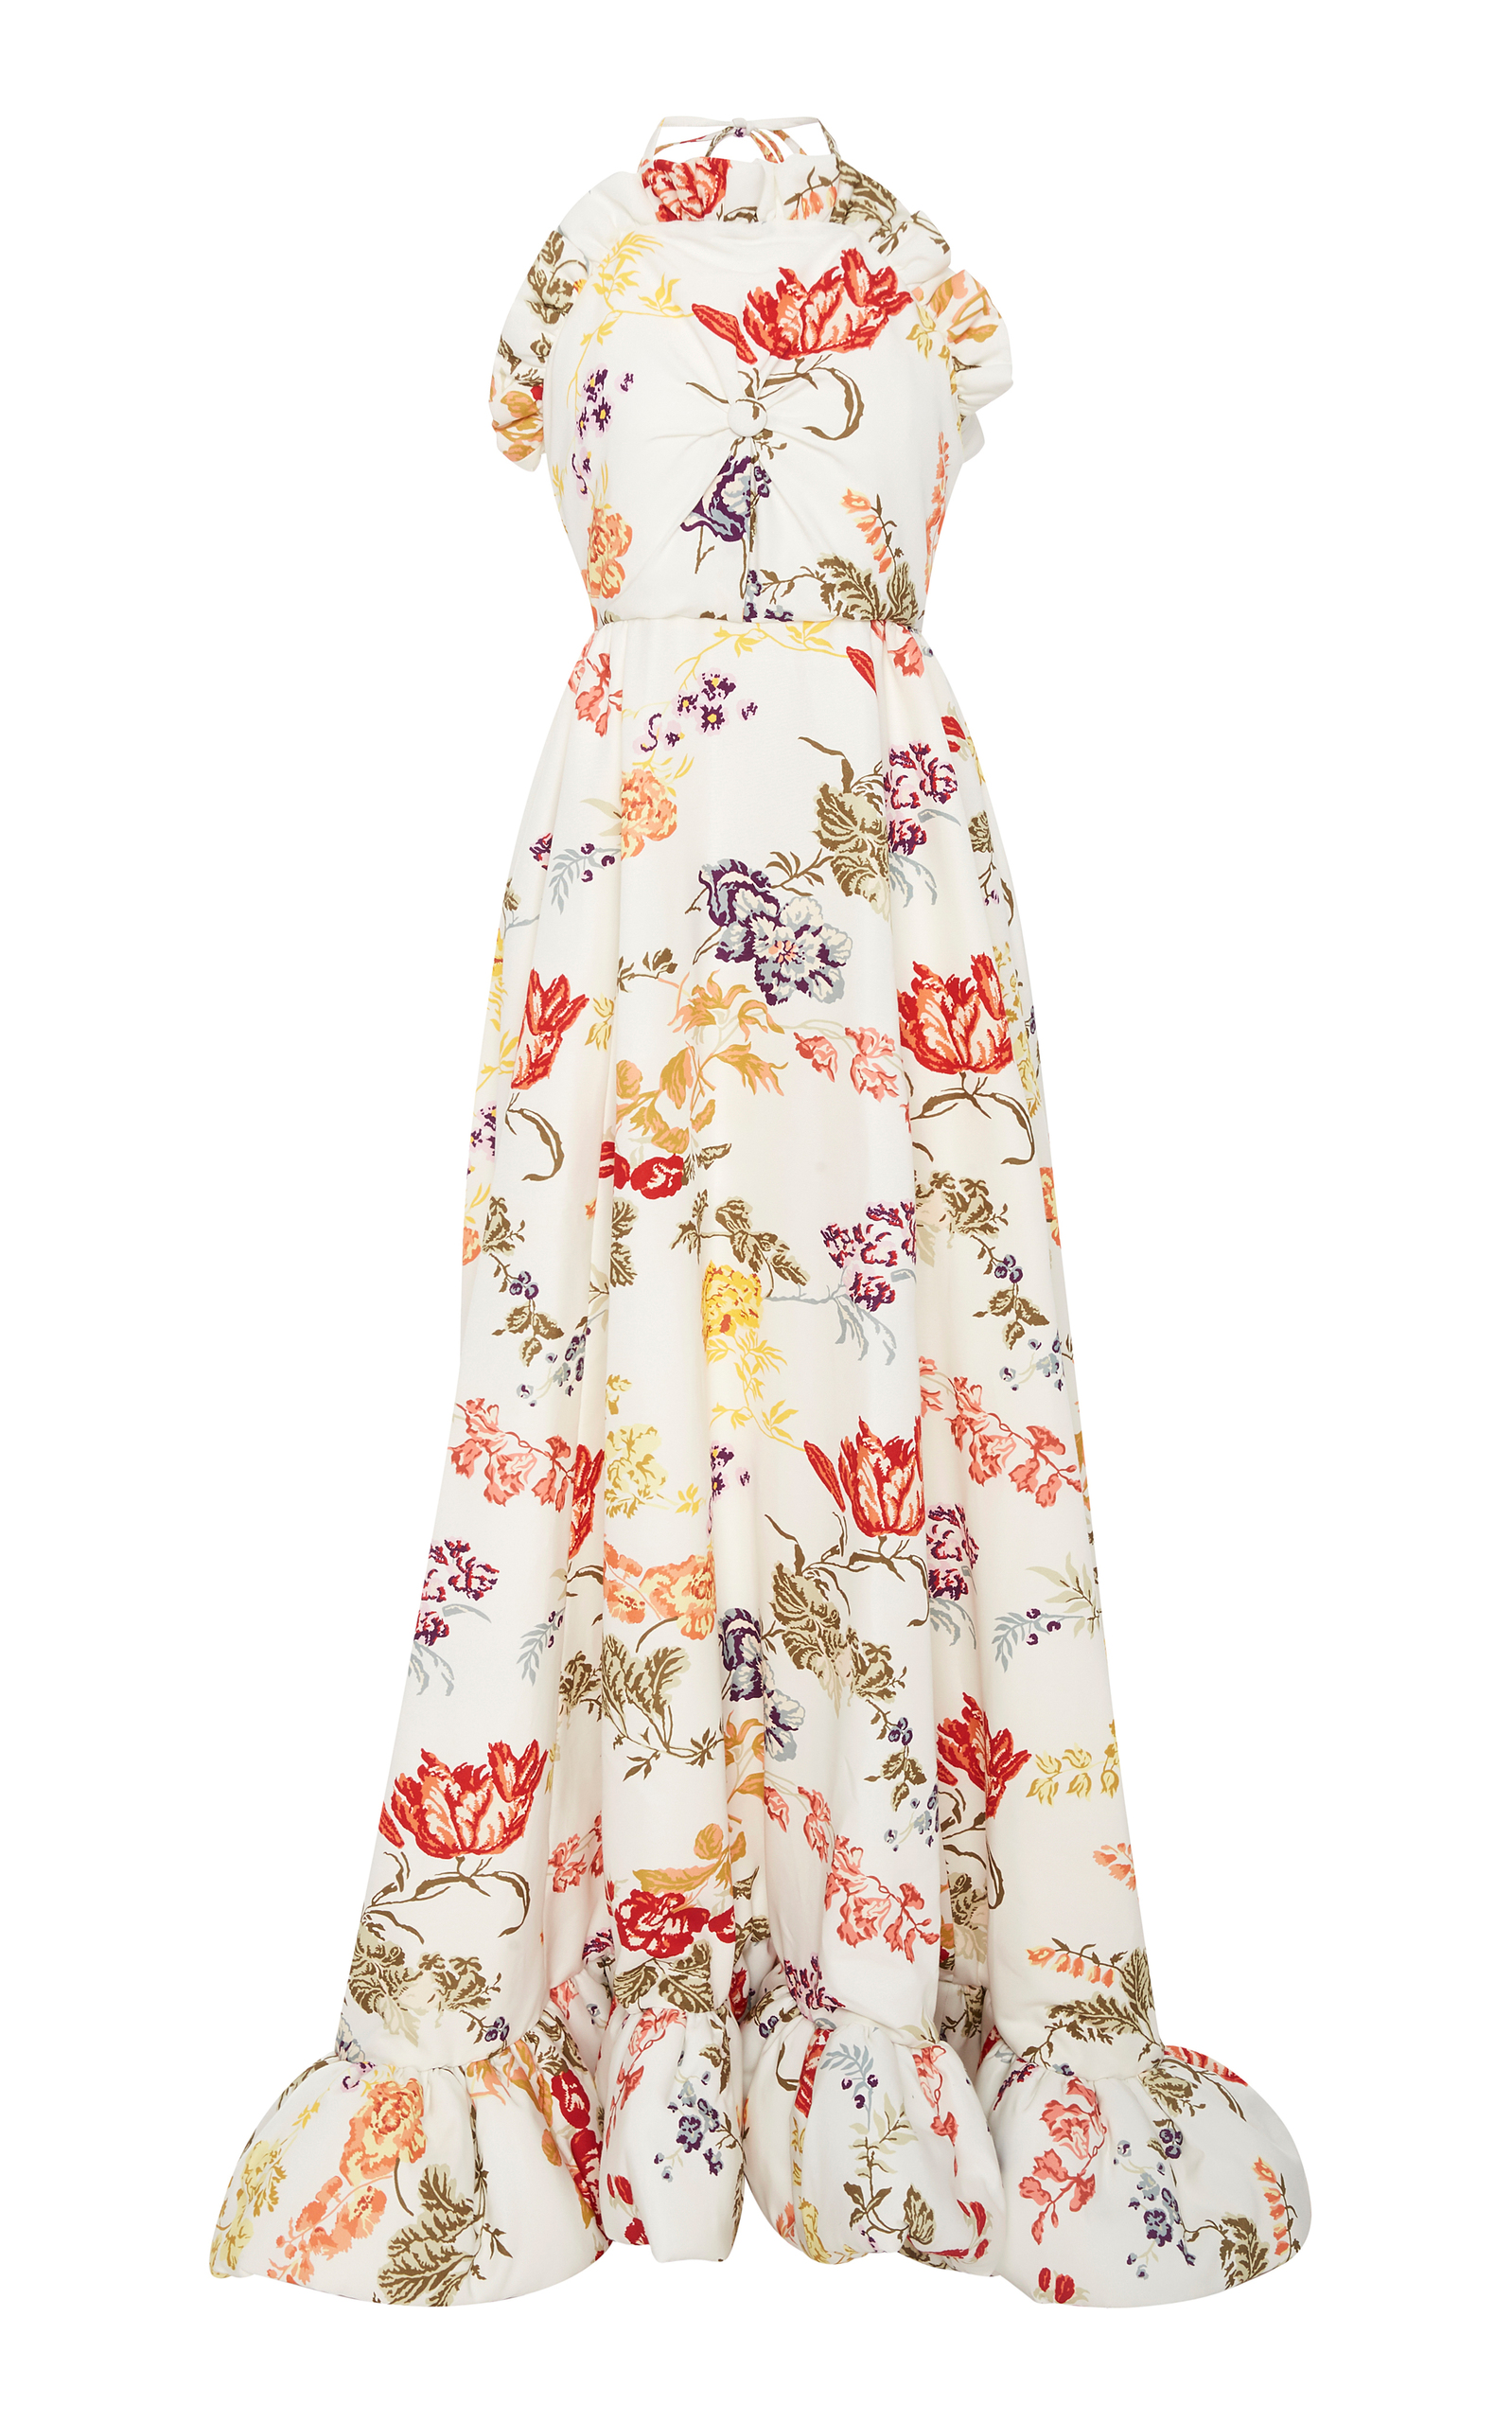 Floral-printed skirt Rosie Assoulin Wholesale Price Online Genuine Cheap Online Limited Edition Sale Online VhIKWX